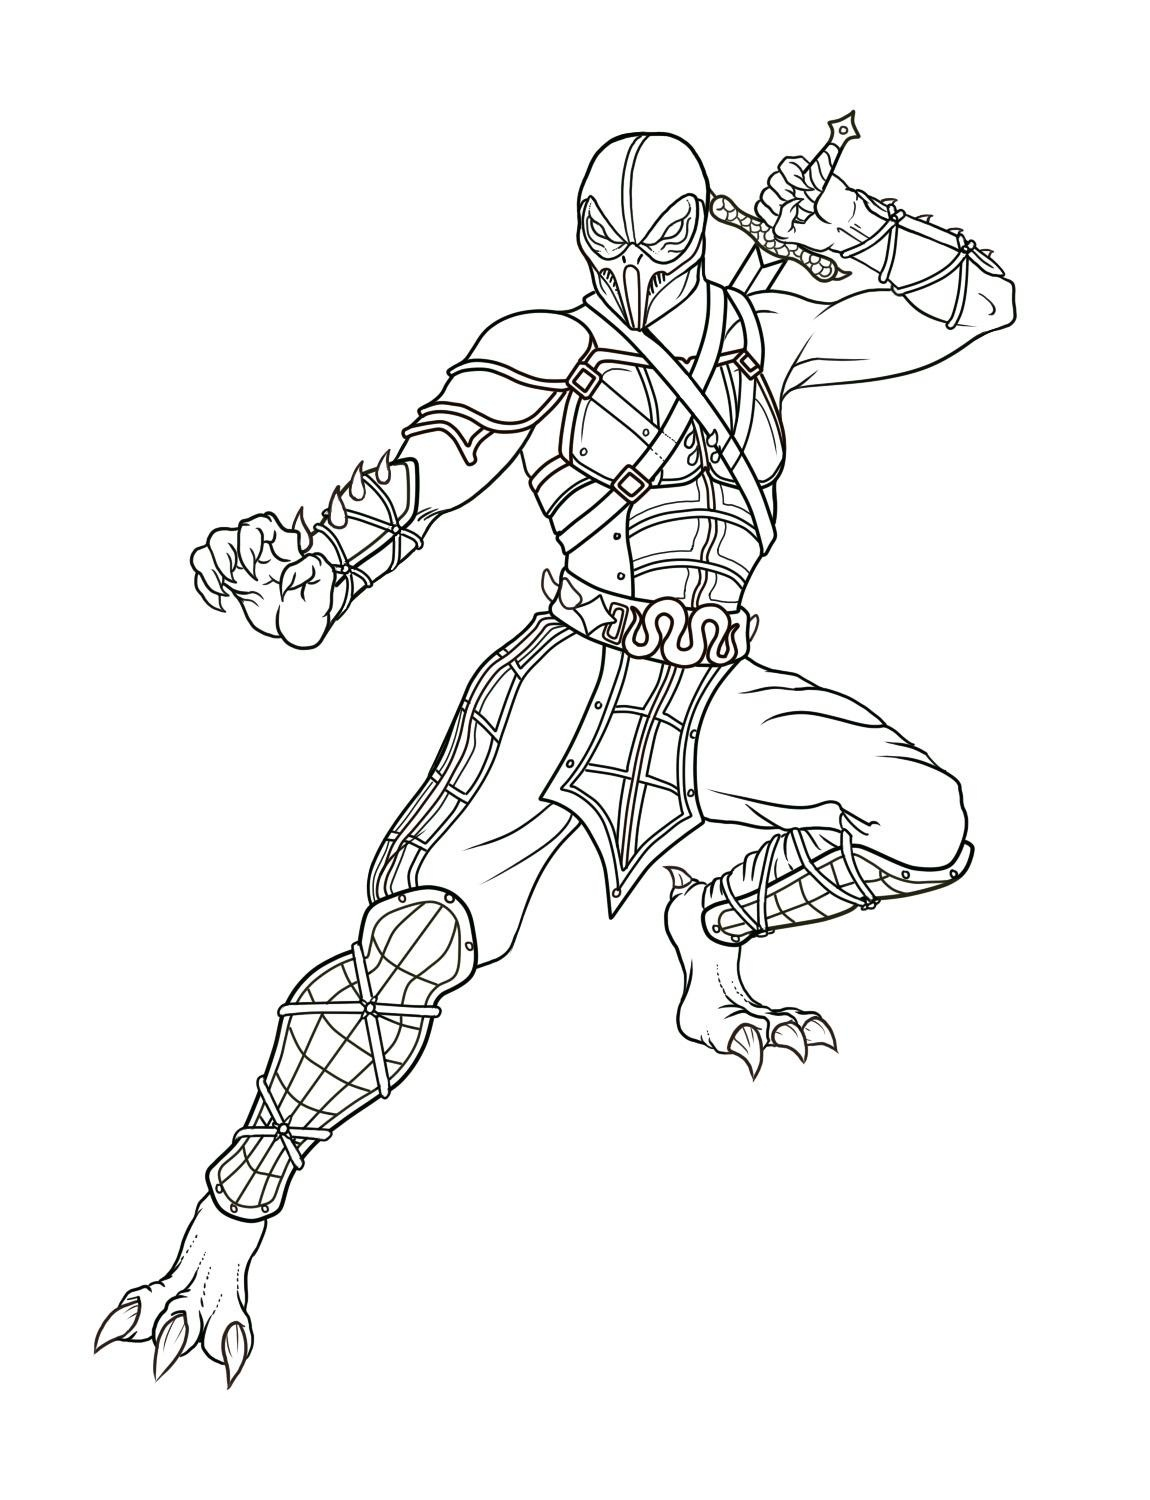 mortal-kombat coloring pages,printable,coloring pages